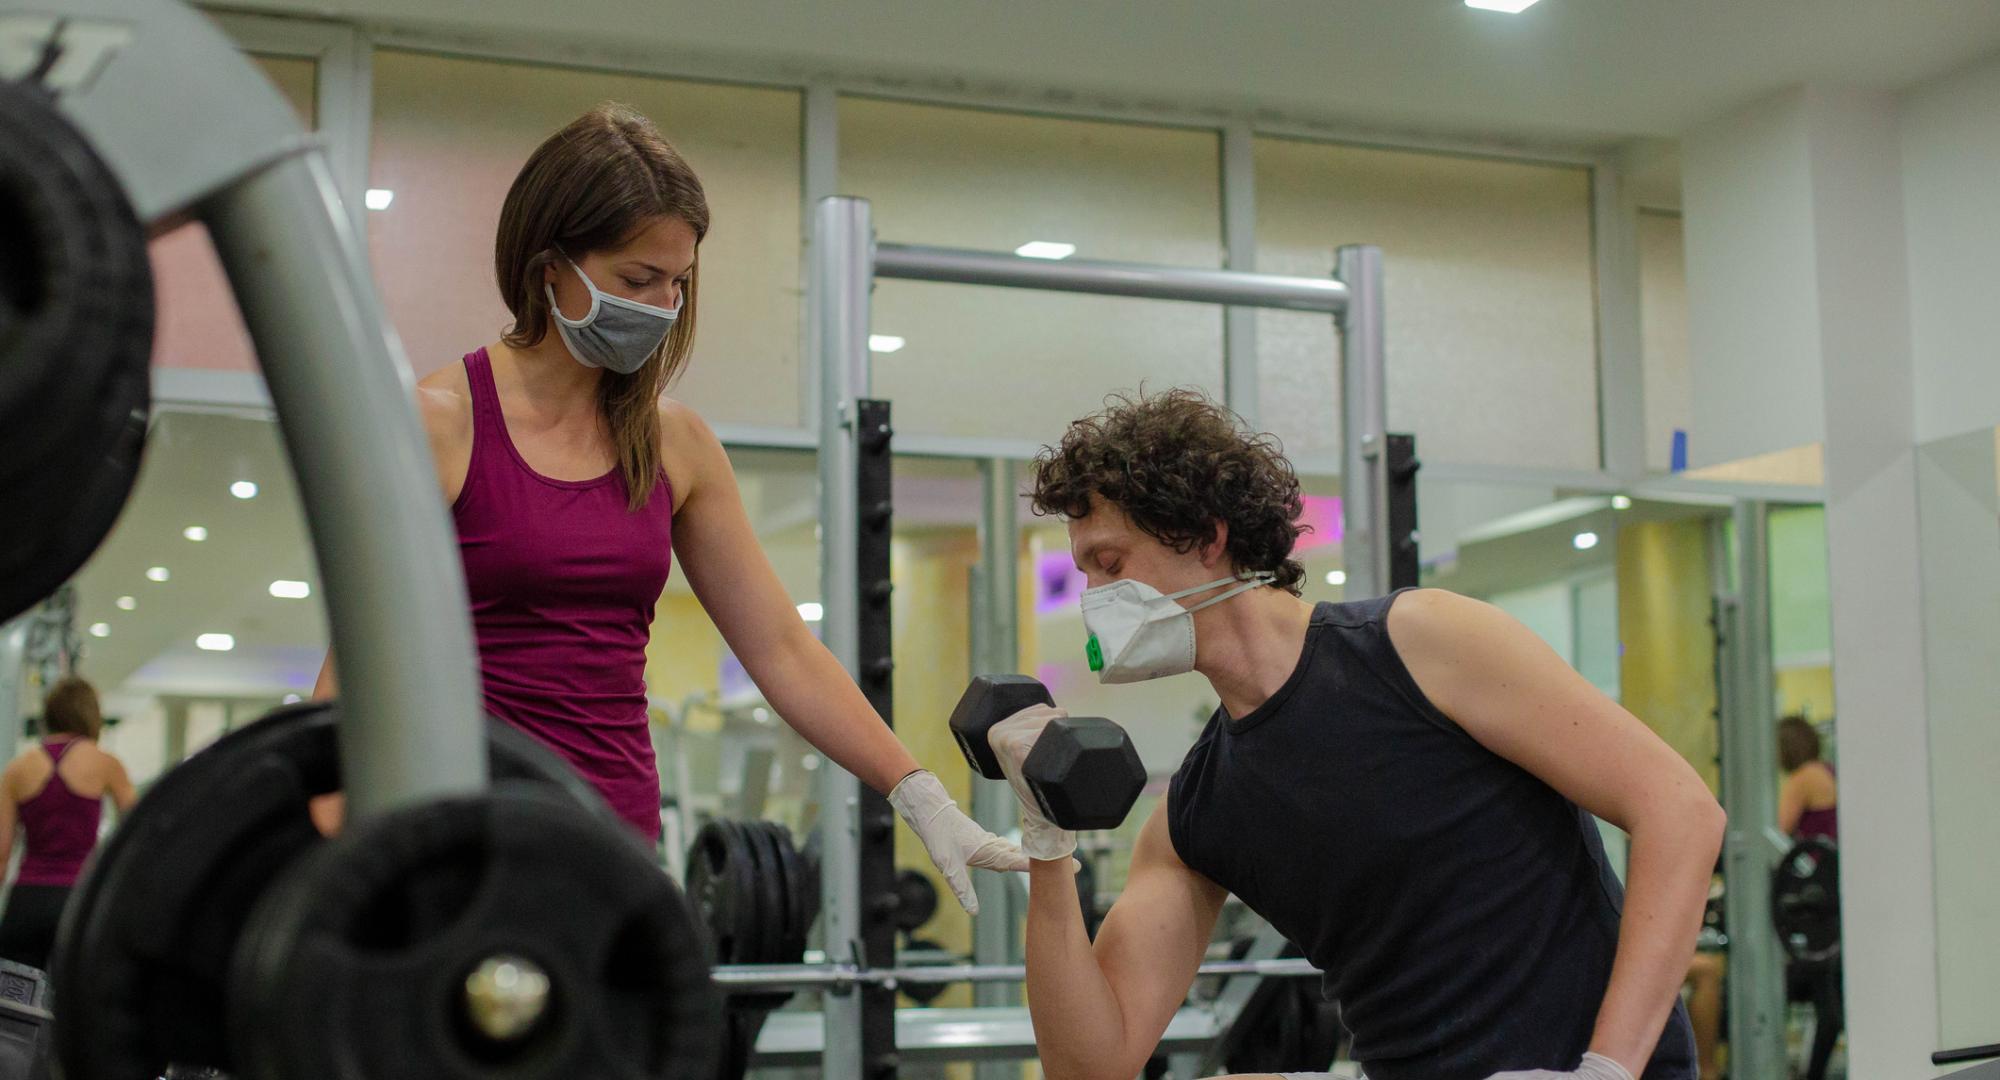 2 people training in a gym while socially distanced and wearing PPE.